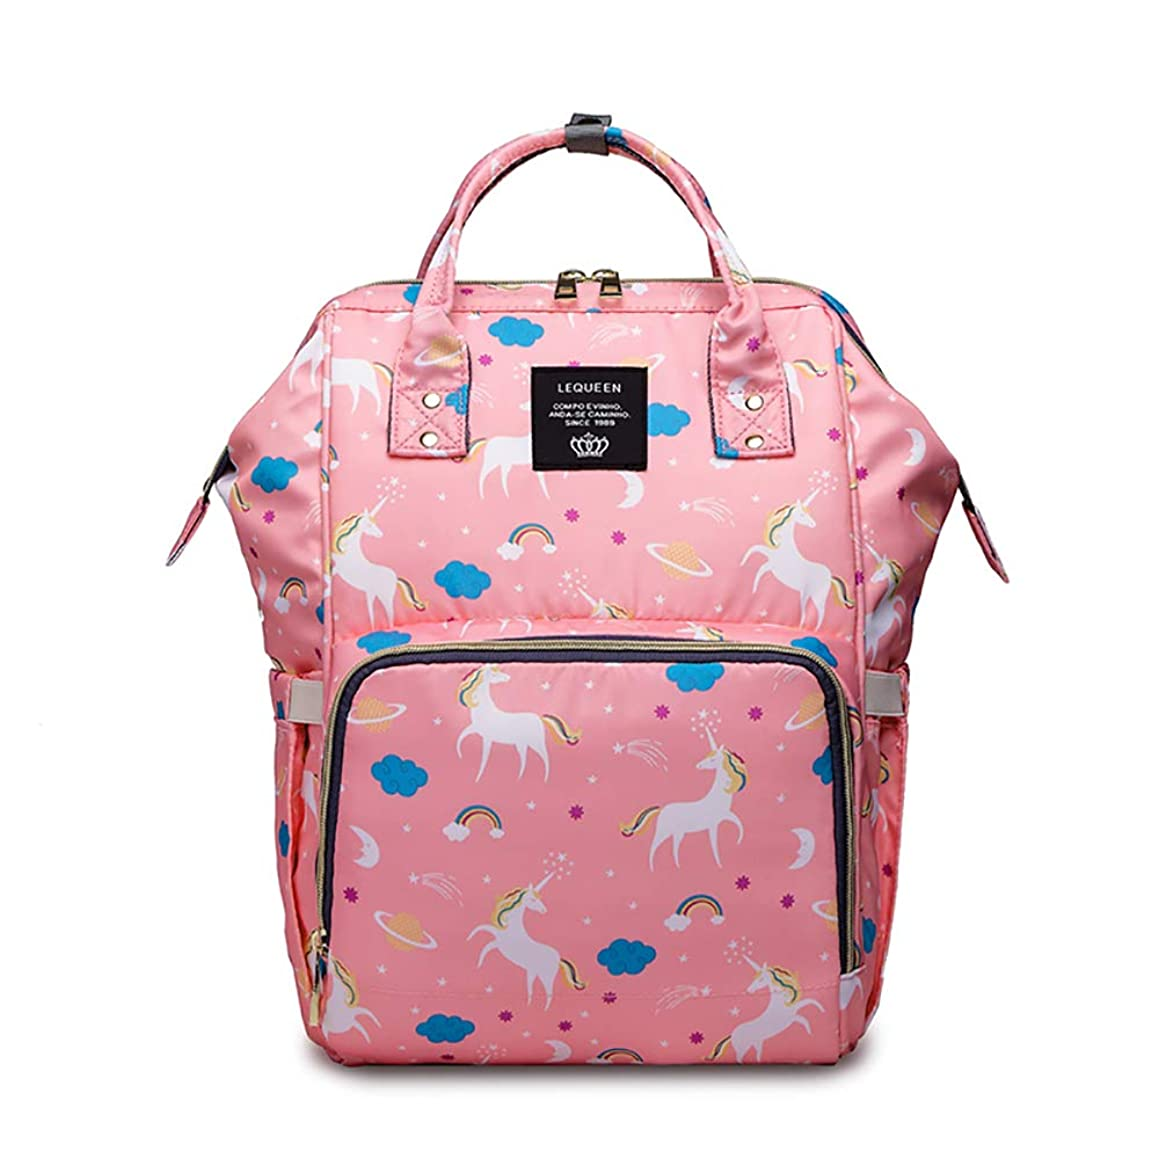 Diaper Bag Backpack, Baby Bag Insert Organizer Travel Backpack Messenger Bag for Boys/Girls with Insulated Pockets, Waterproof Durable Dad and Mom Baby Diaper Bag Organizer Baby Nappy Bags (Pink)